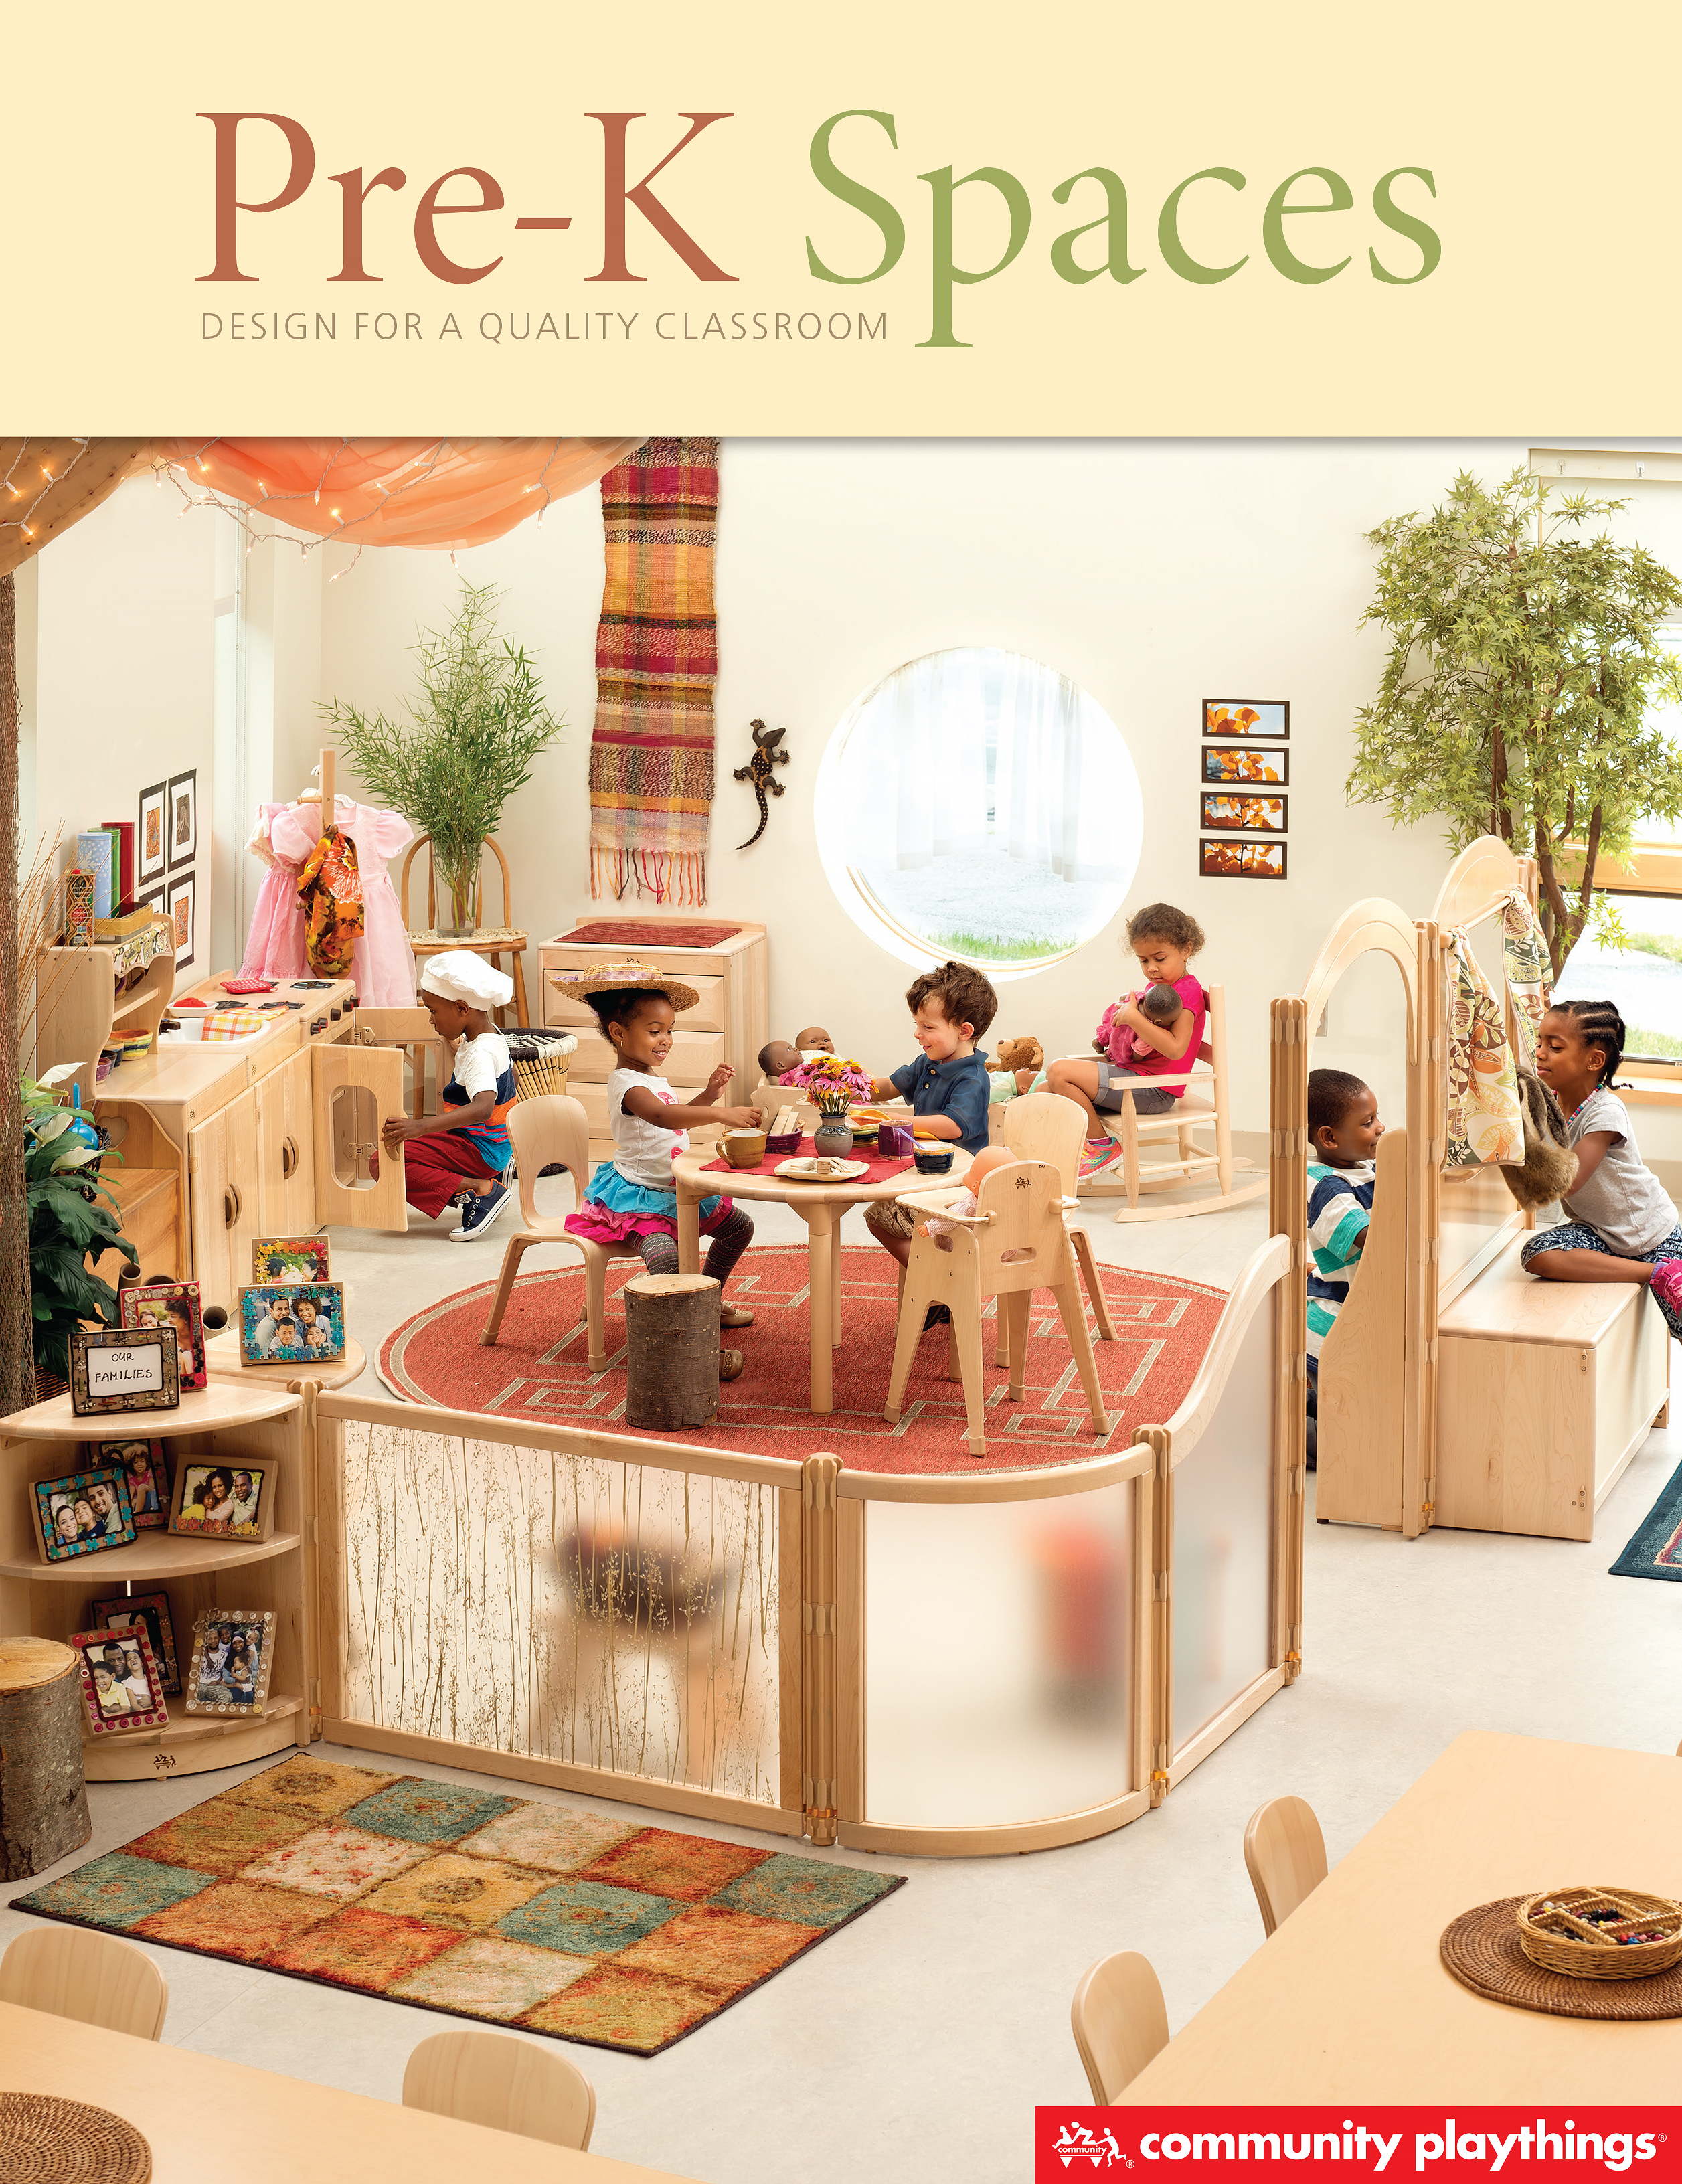 PreK Spaces